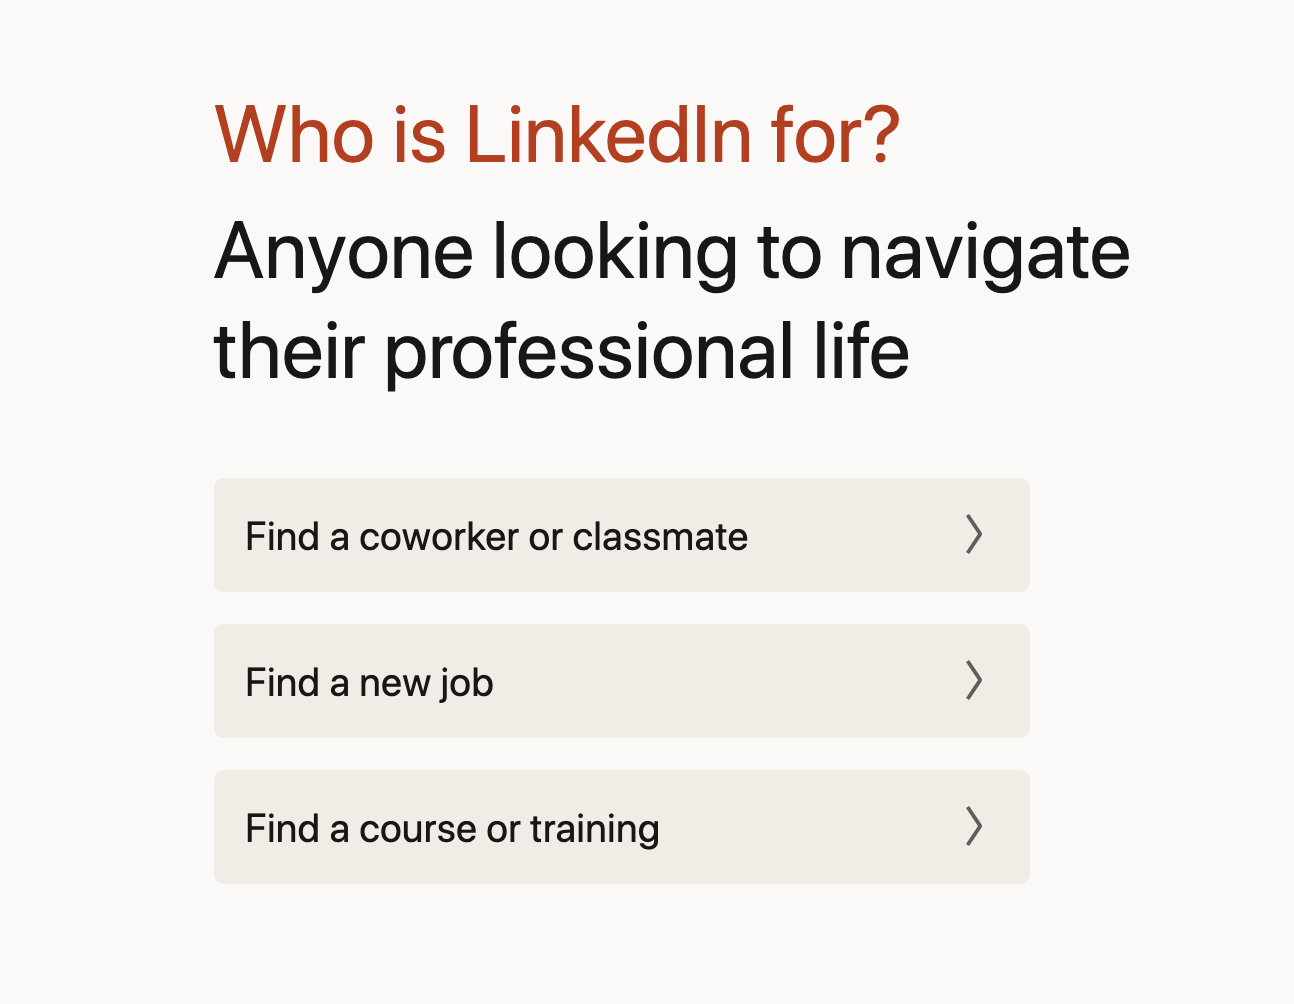 Who is LinkedIn for?